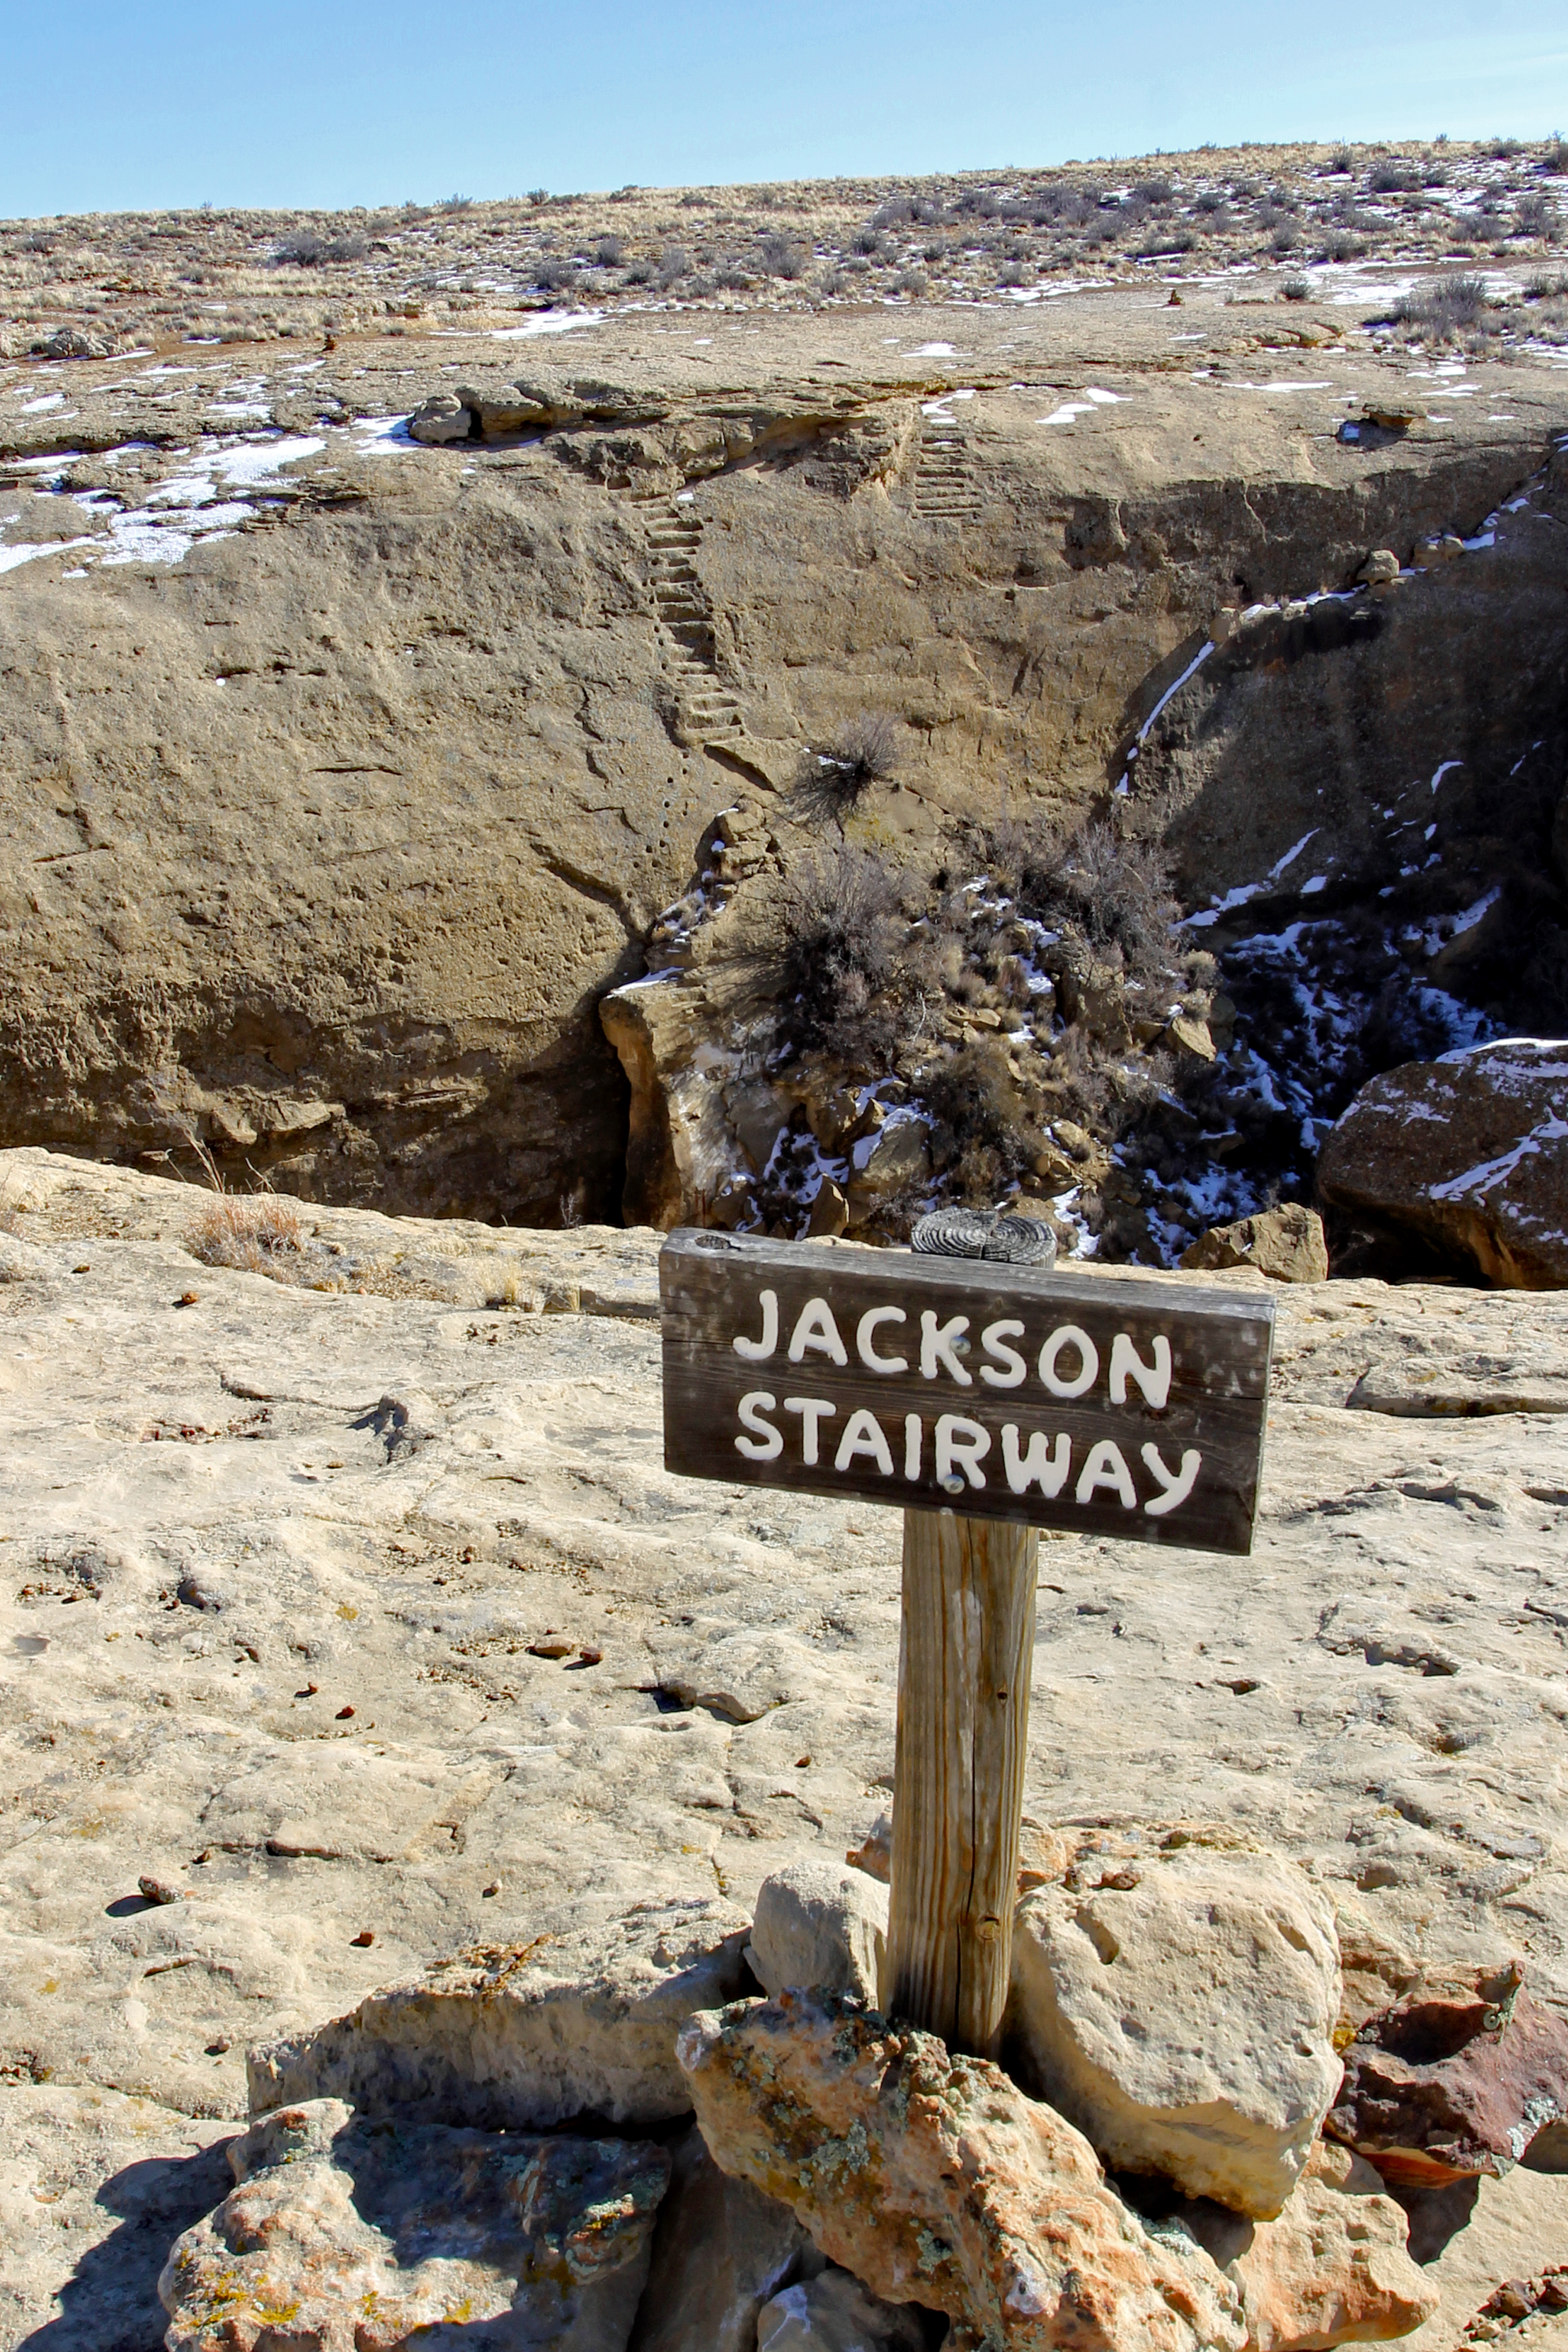 Jackson 's Stairway at Chaco Canyon in Nageezi, NM